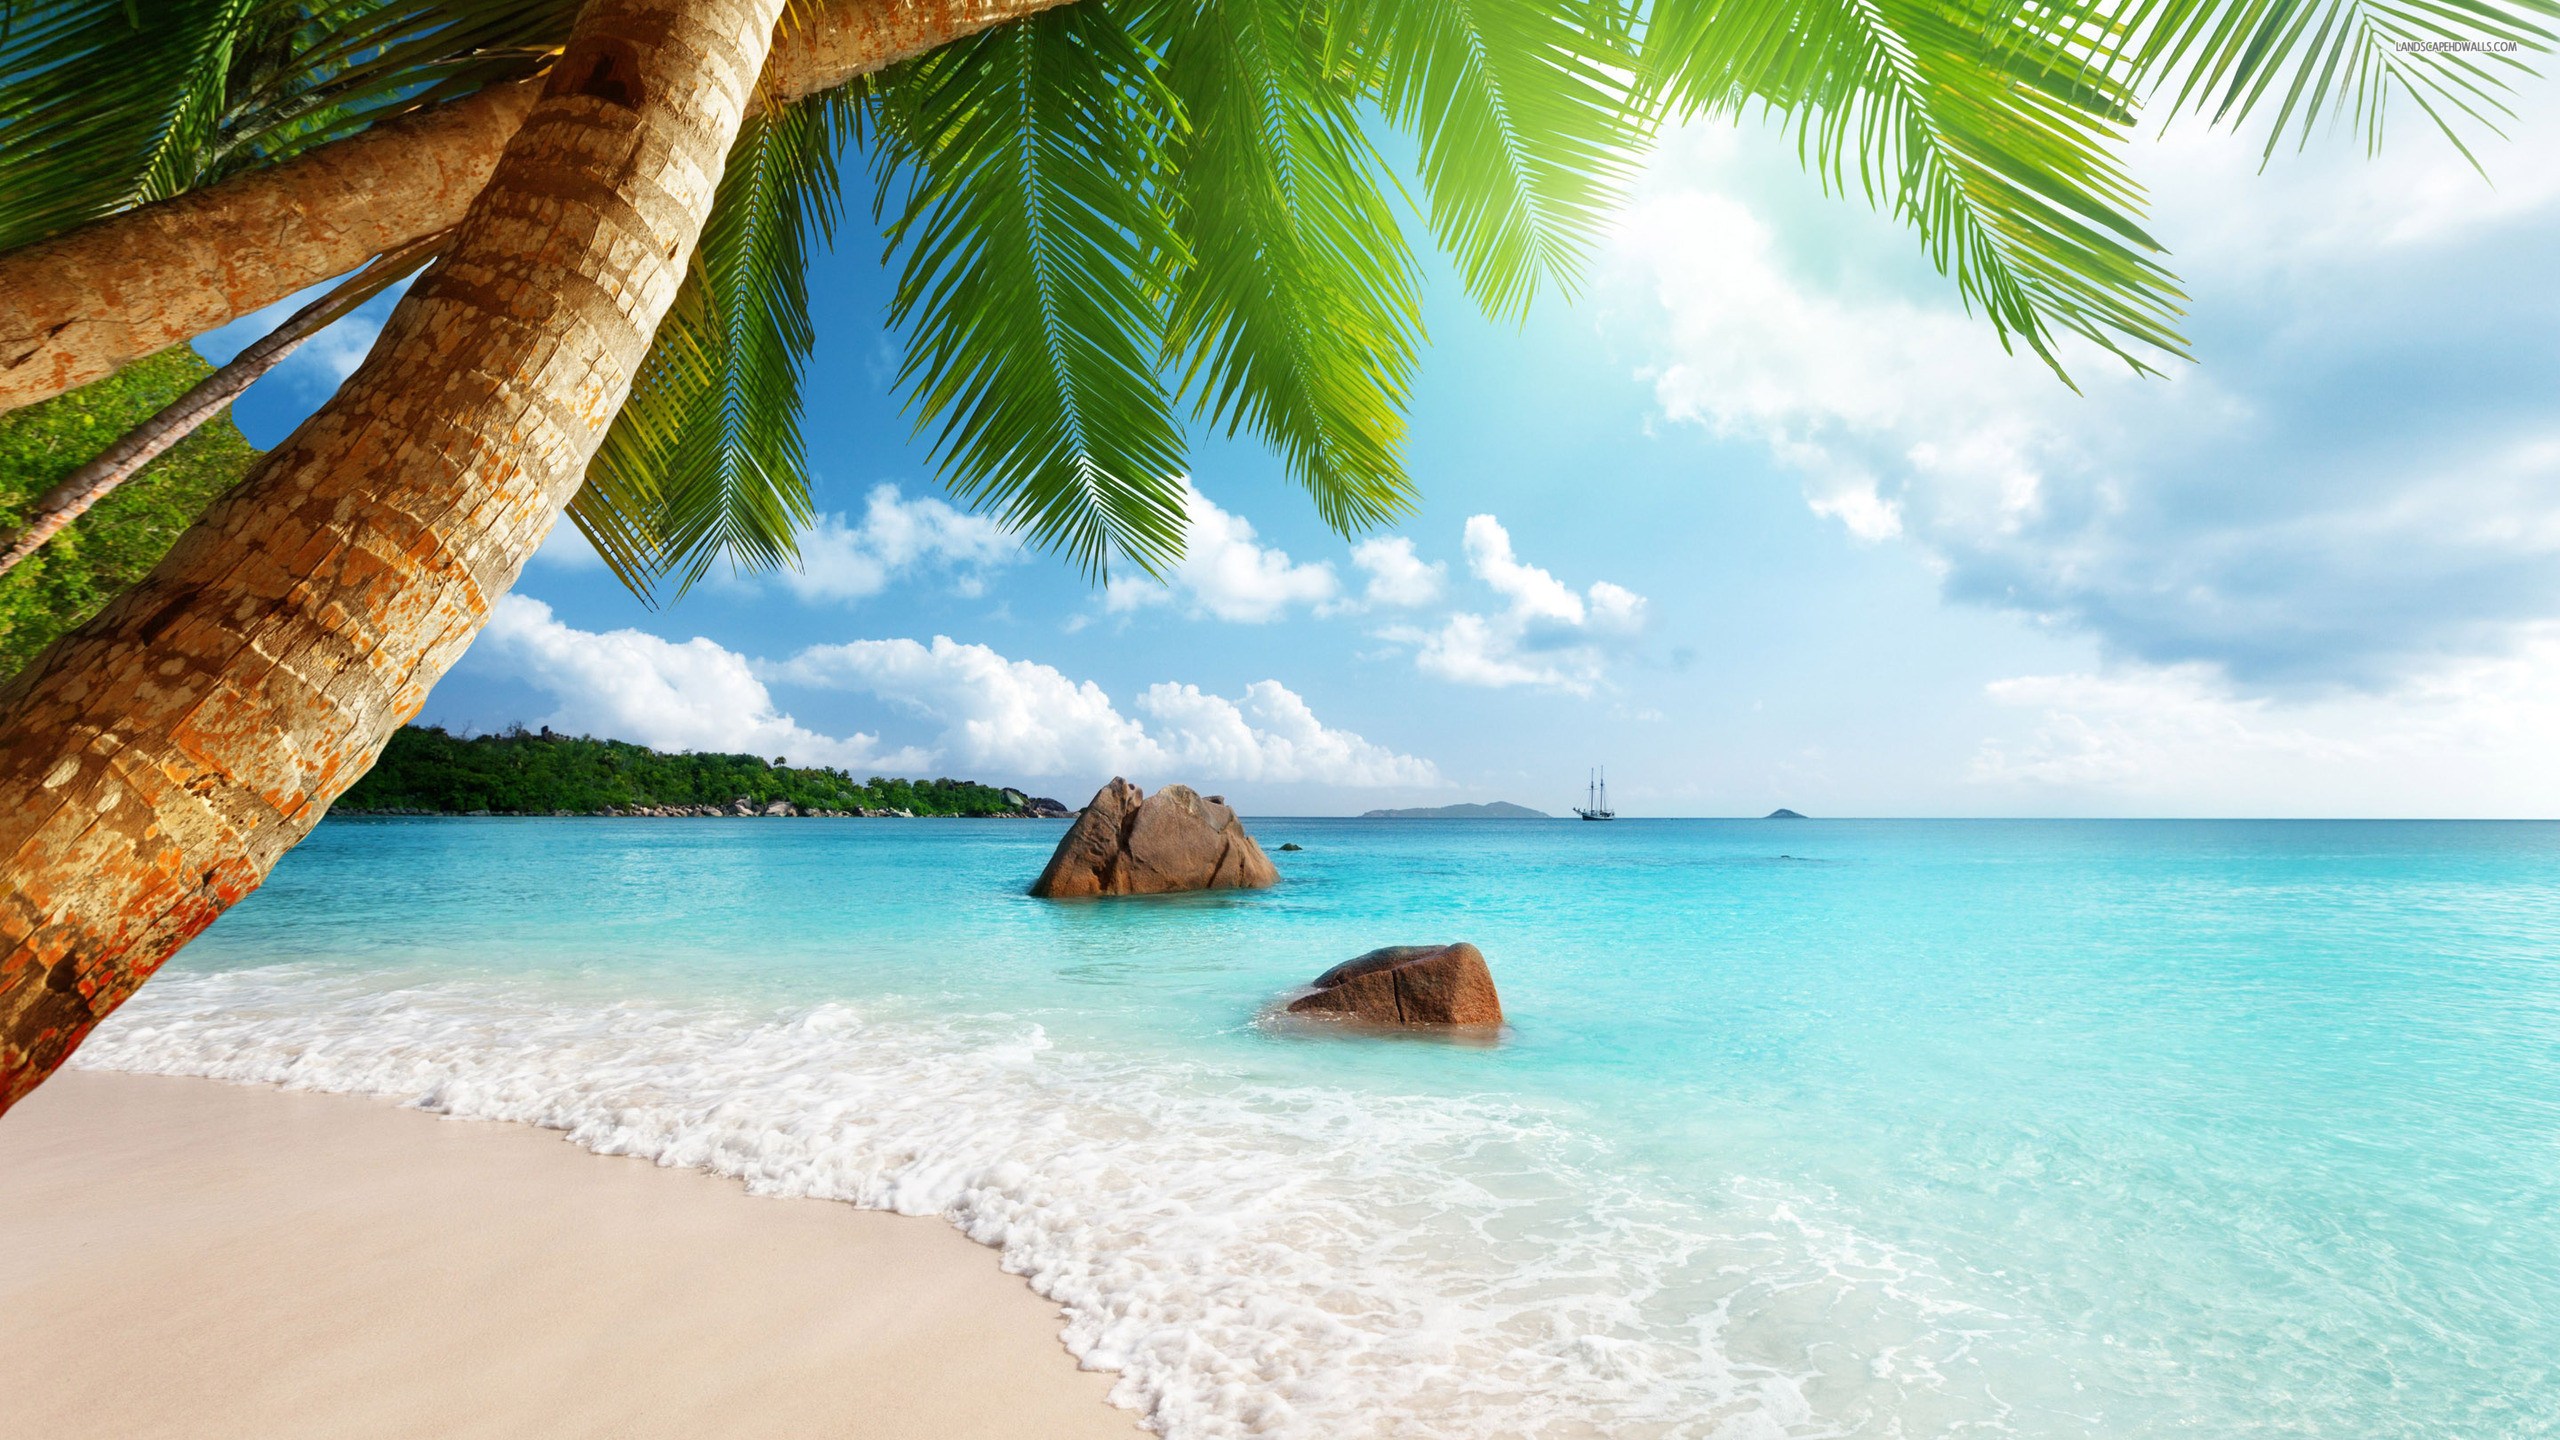 … Beach Wallpaper HD 8993 | HD Wallpaper Site